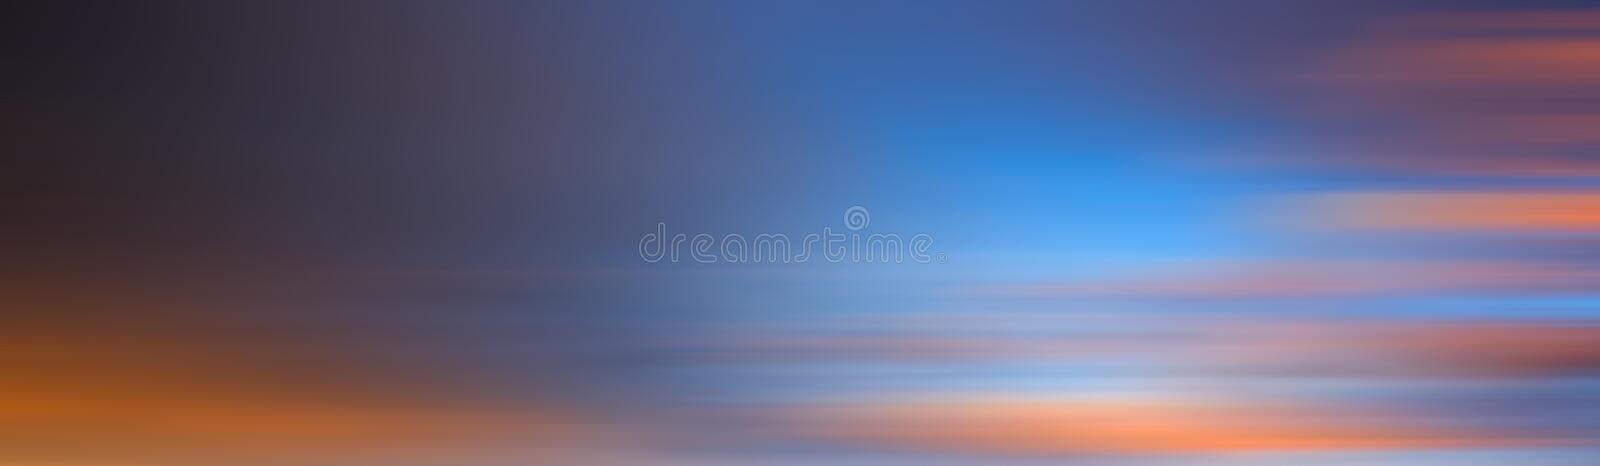 Colorful motion blur effect of sunset for background stock images